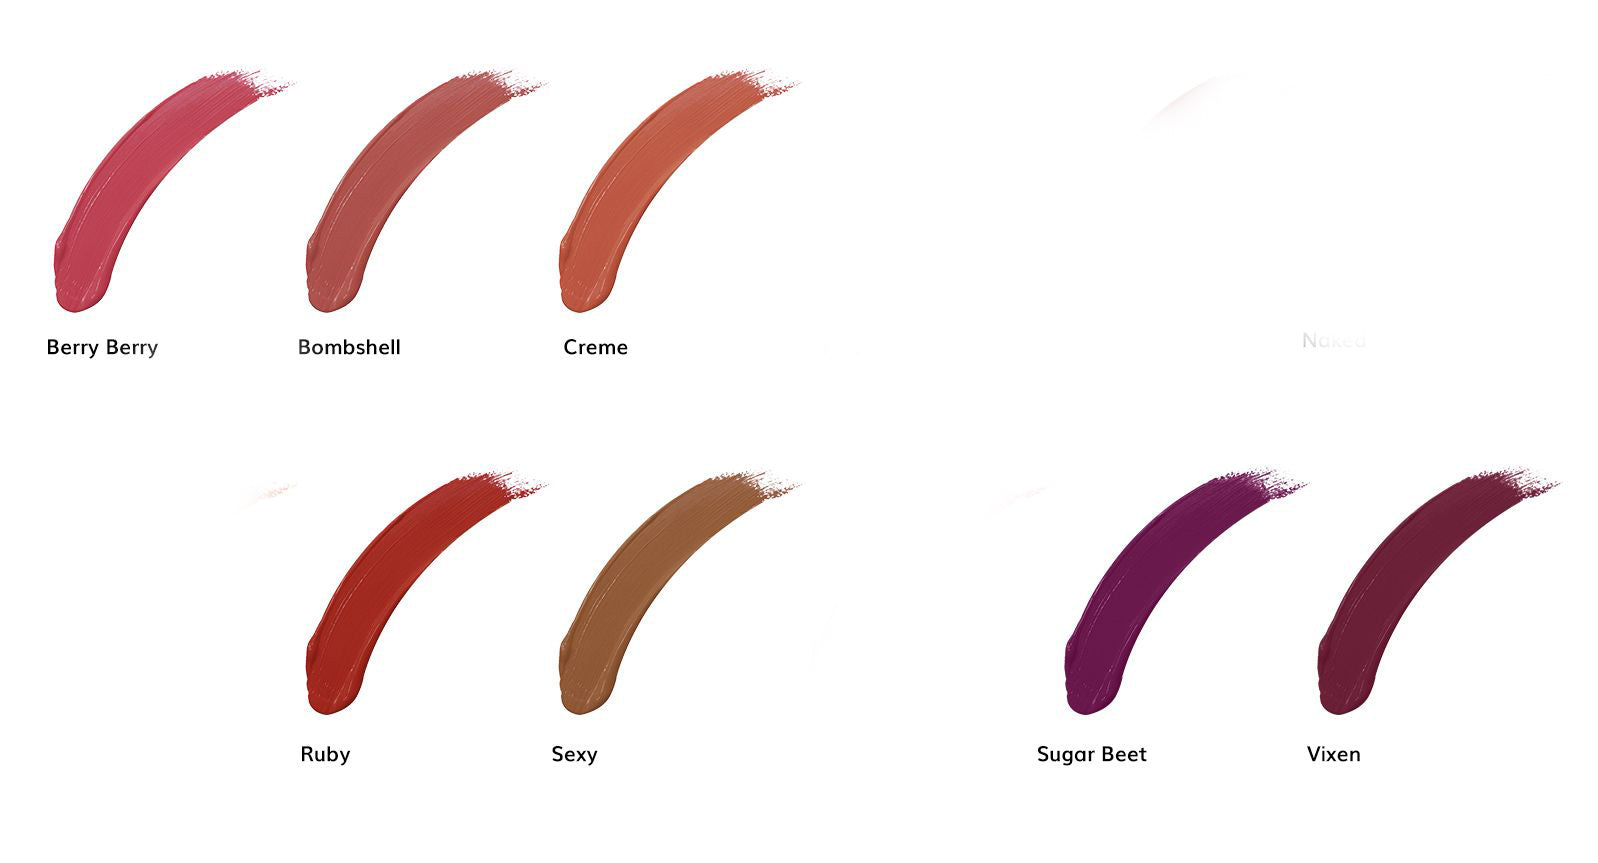 Our best selling Liquid to Matte Lipstick provides luscious color and comfortable wear. It is highly pigmented, glides on smoothly, and has a velvety finish. Volume 2 comes with a lush slanted tip applicator for a precise, no fuss application. Infused with our orange creamcicle and sugar cookie scent